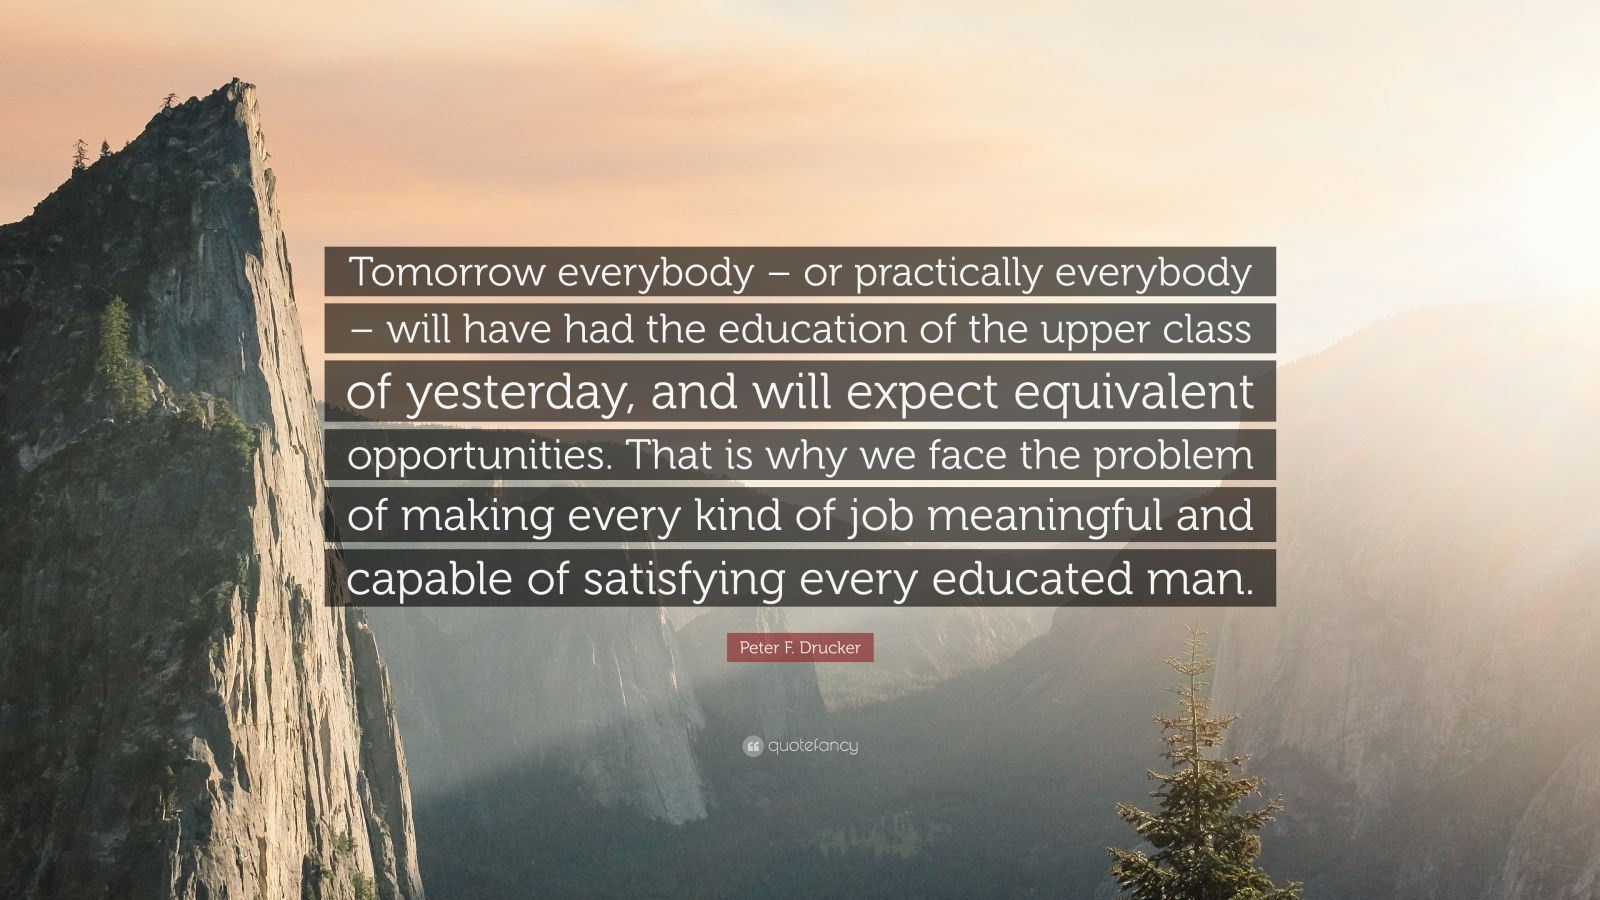 """Peter F. Drucker Quote: """"Tomorrow everybody – or practically everybody – will have had the education of the upper class of yesterday, and will expect equivalent opportunities. That is why we face the problem of making every kind of job meaningful and capable of satisfying every educated man."""""""